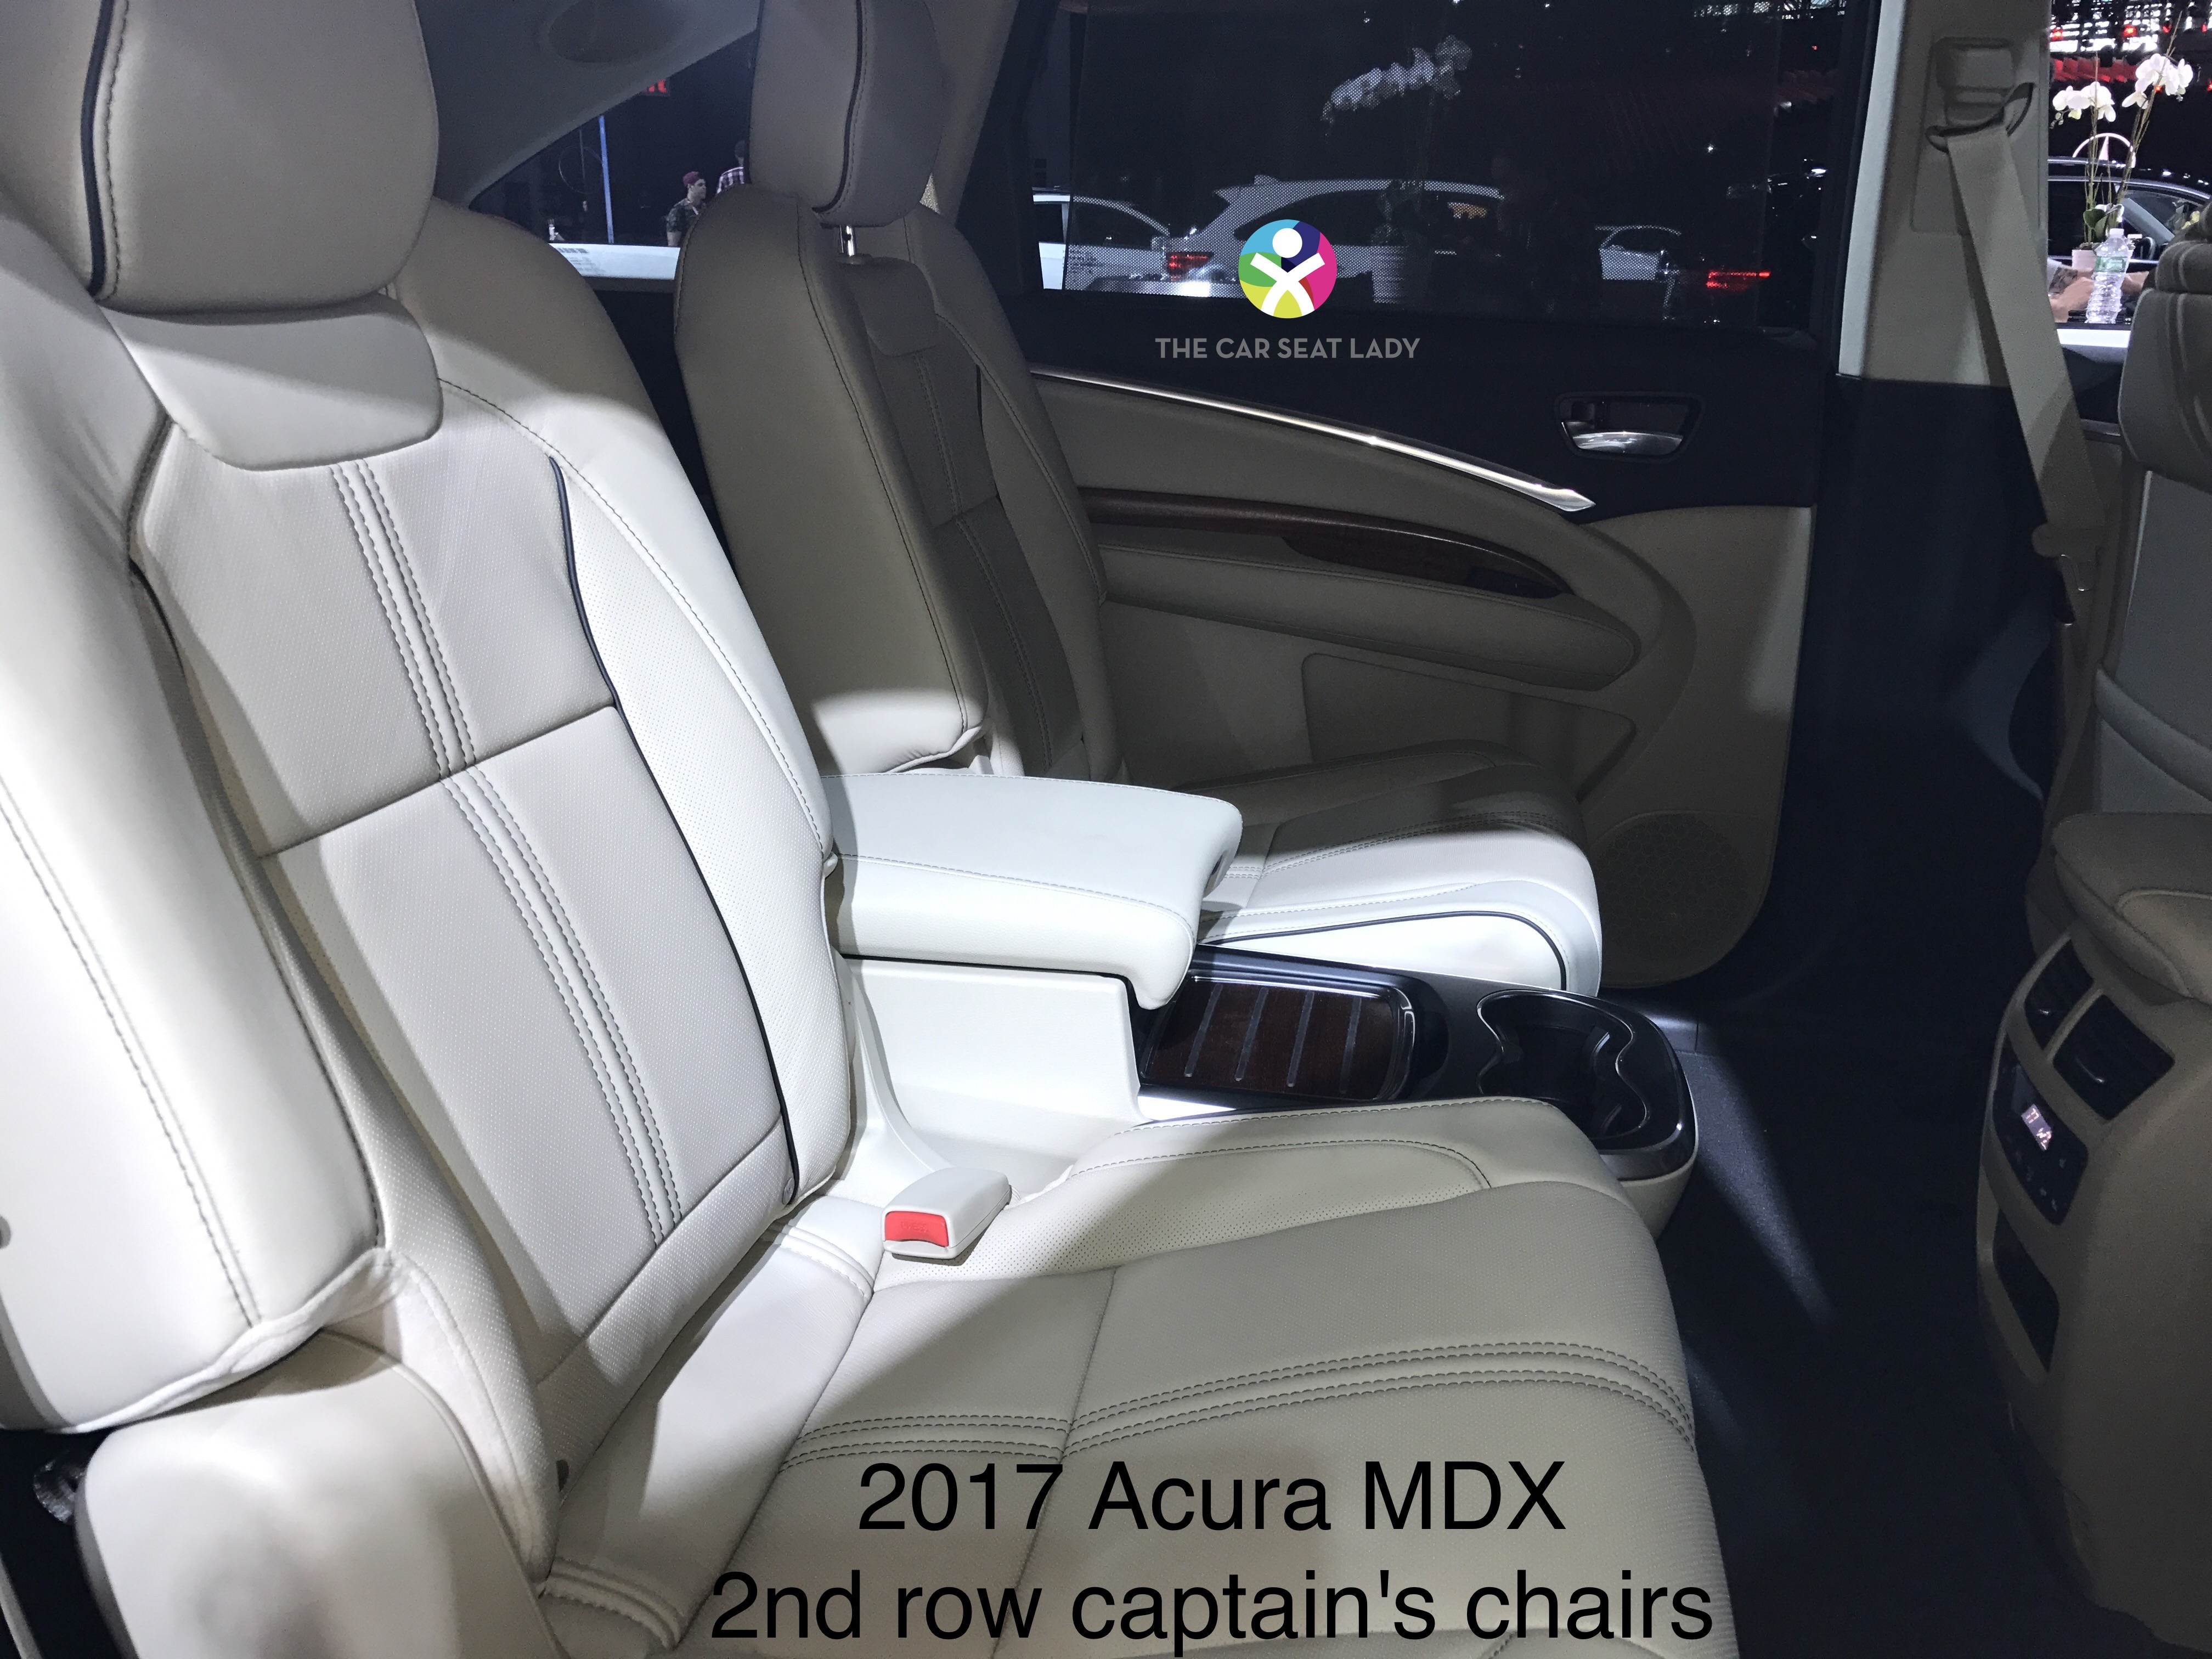 The Car Seat LadyAcura MDX  The Car Seat Lady